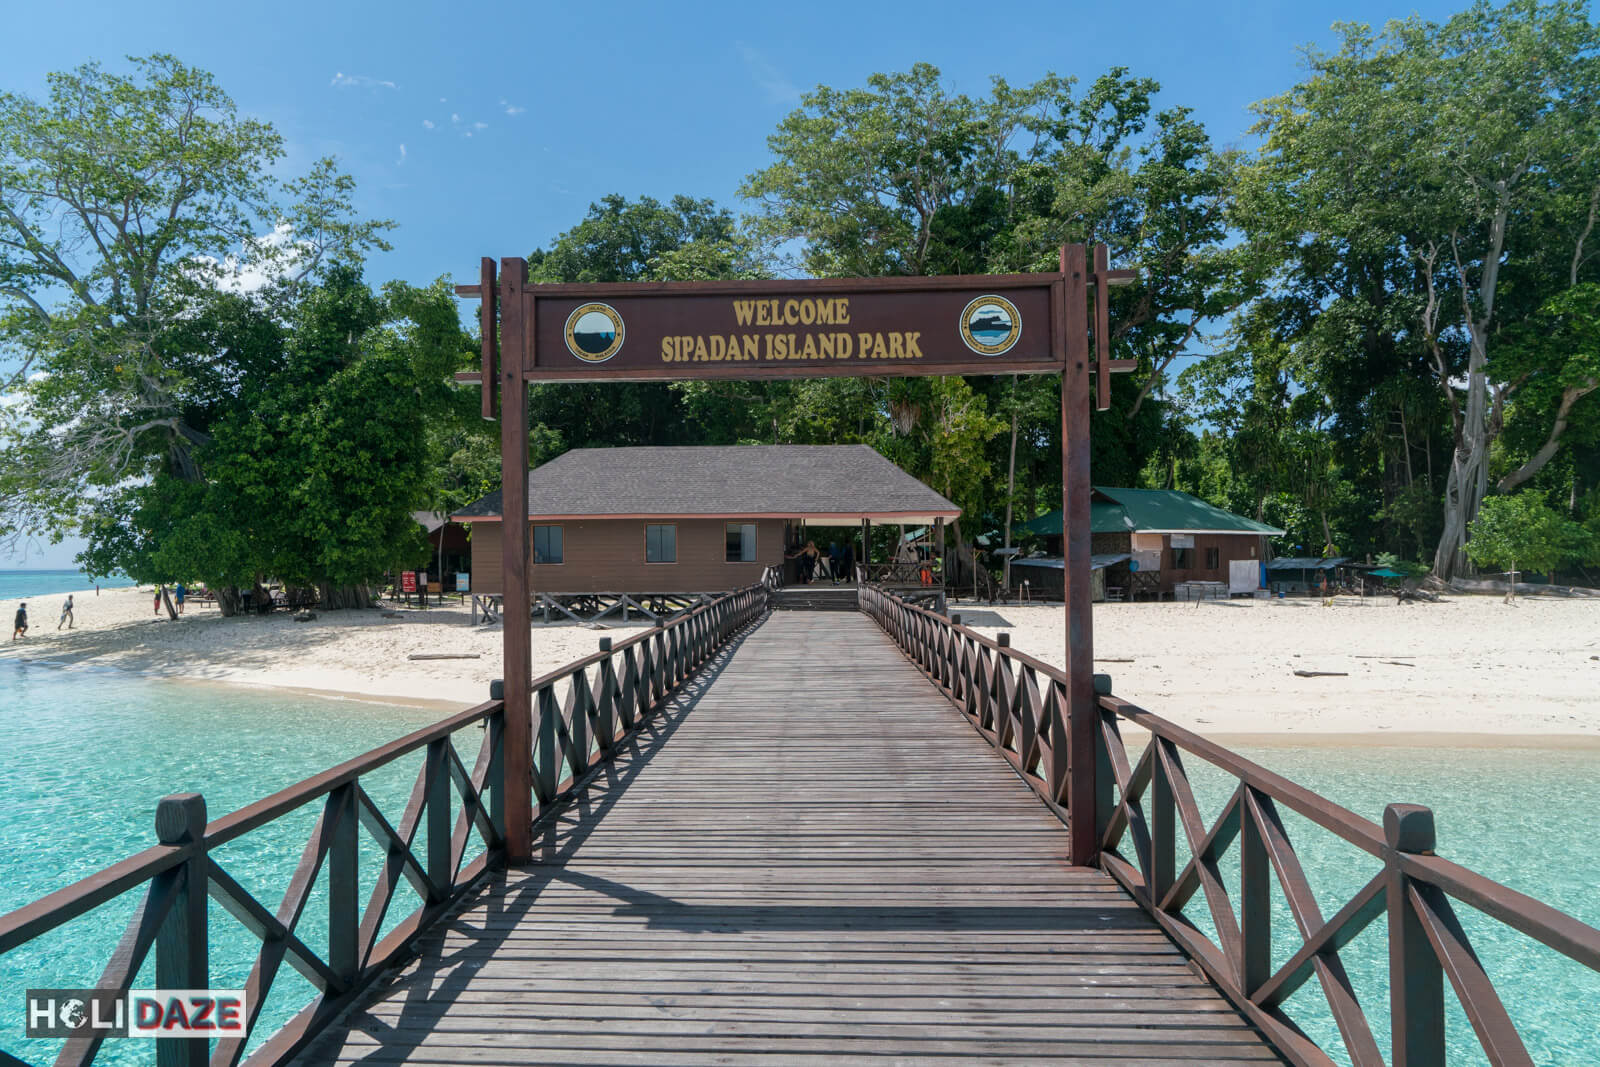 Welcome to Sipadan Island Park